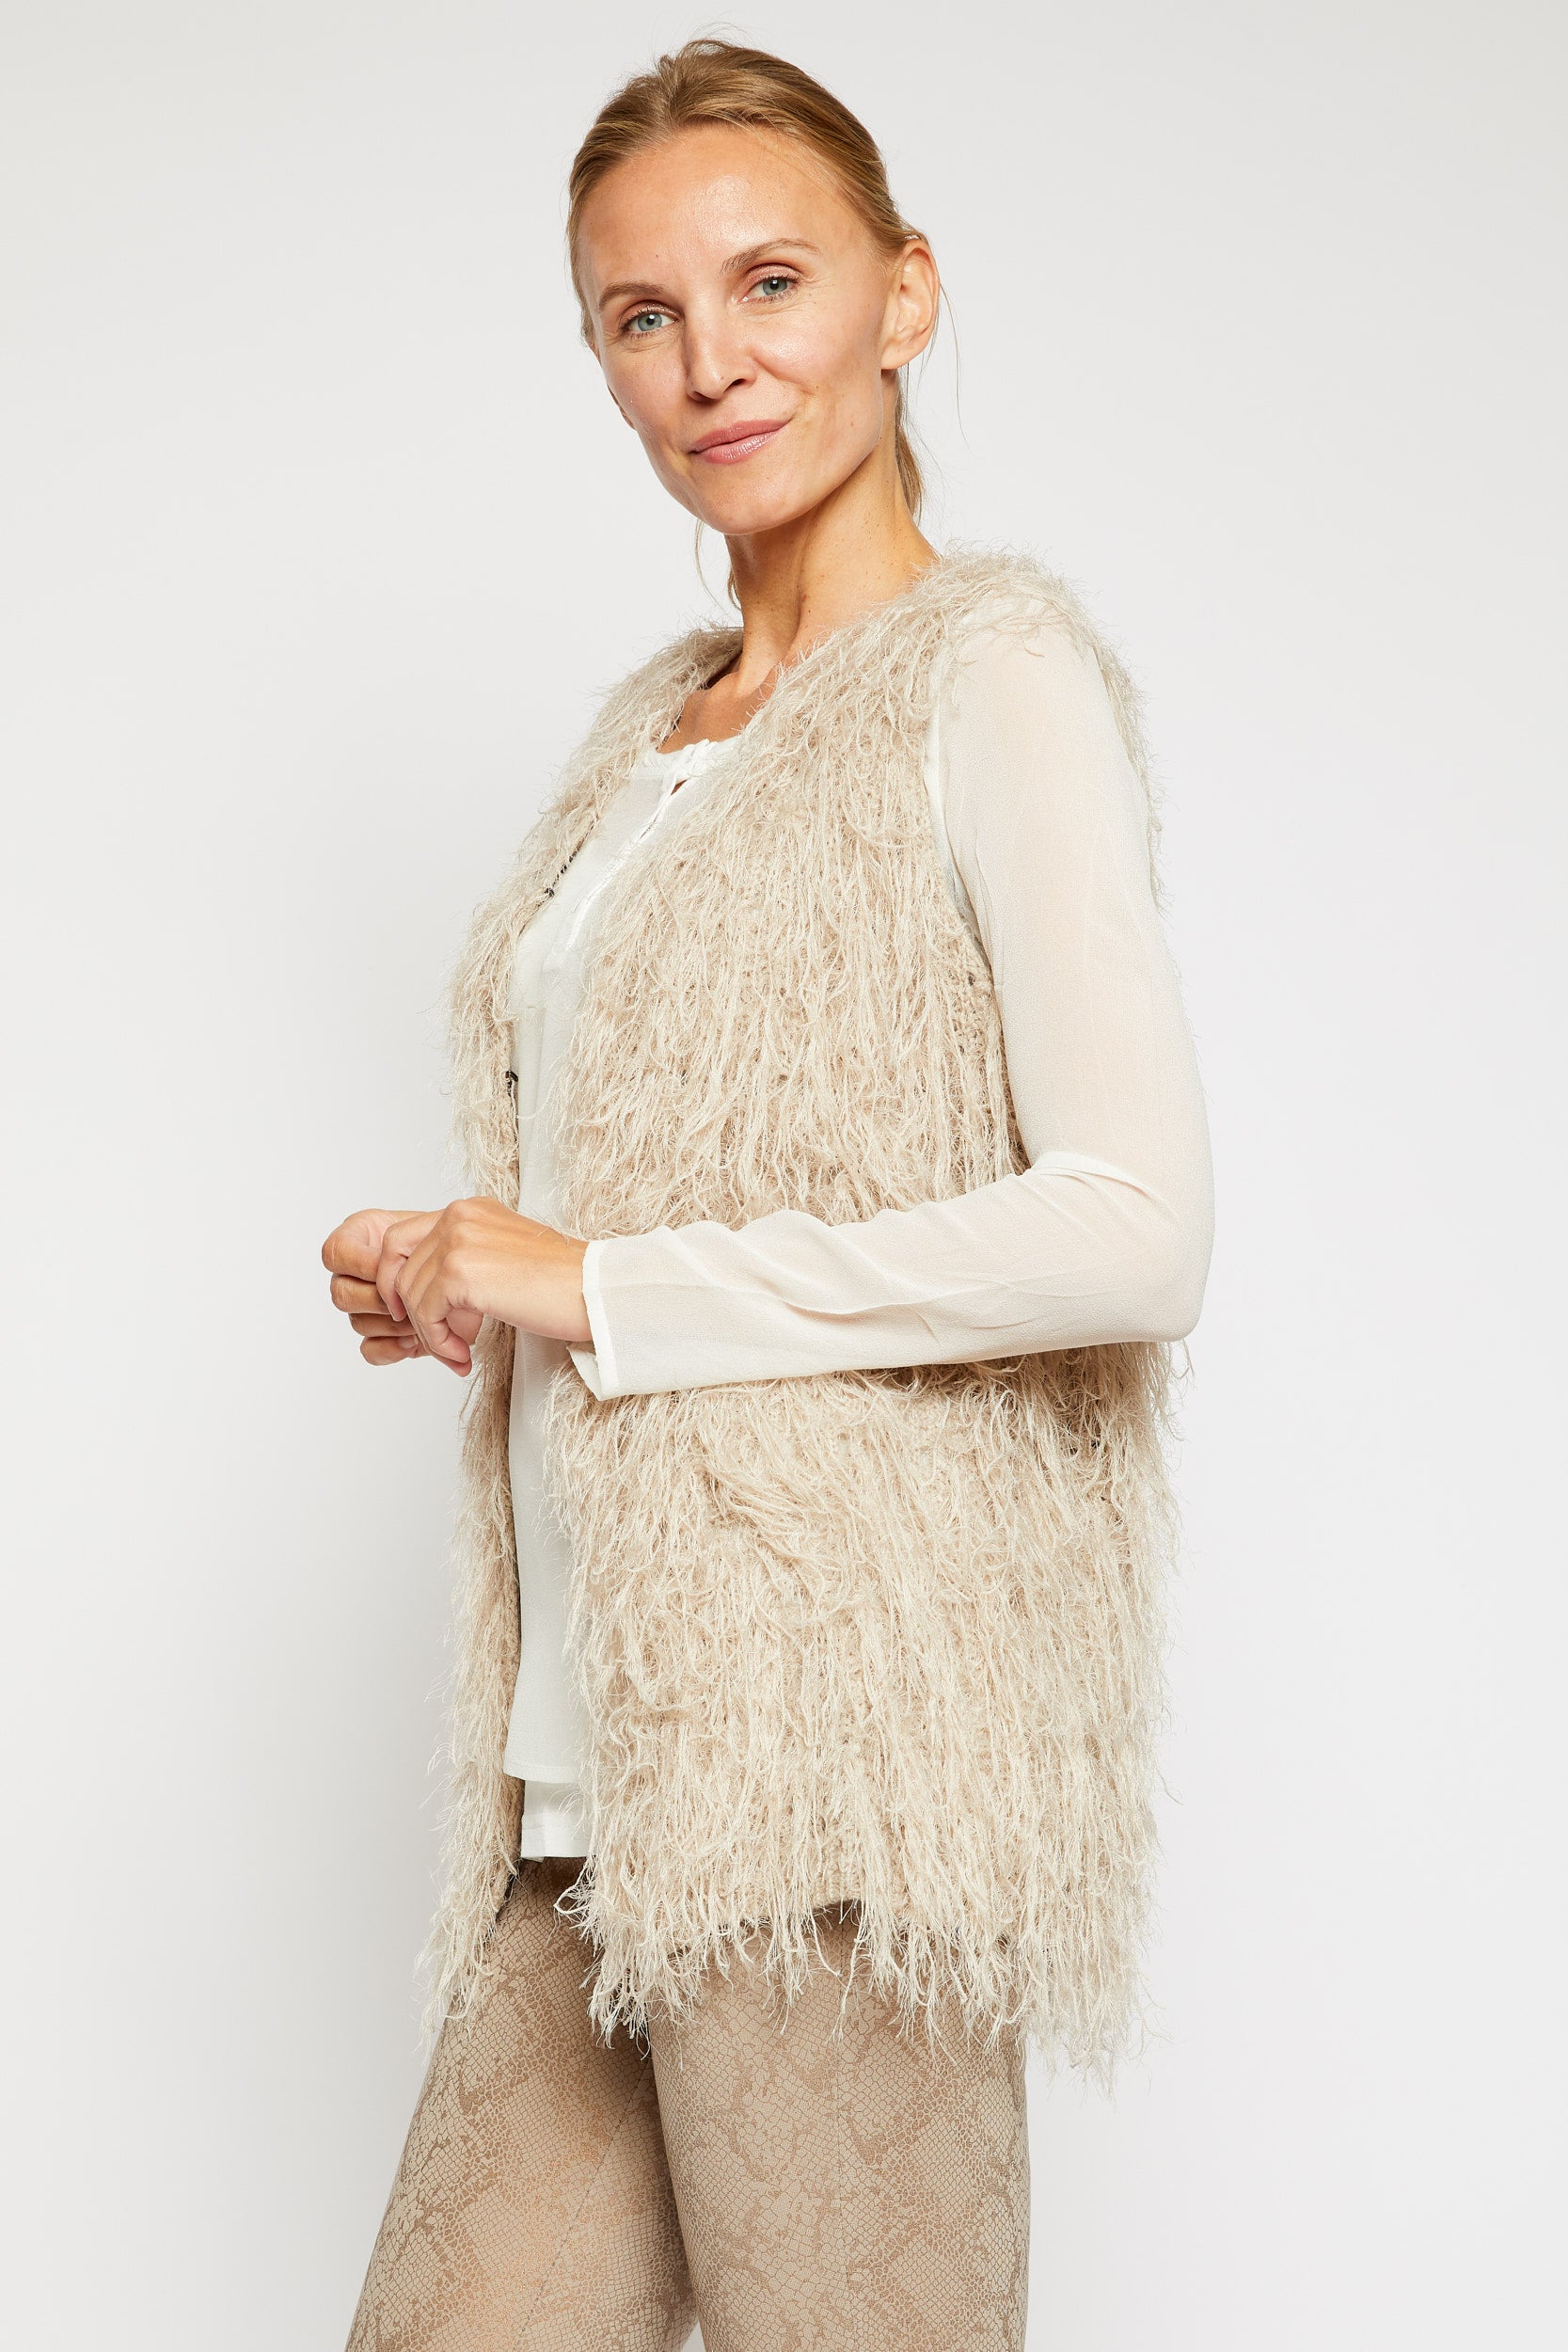 Furry Sweater Vest - Jacqueline B Clothing